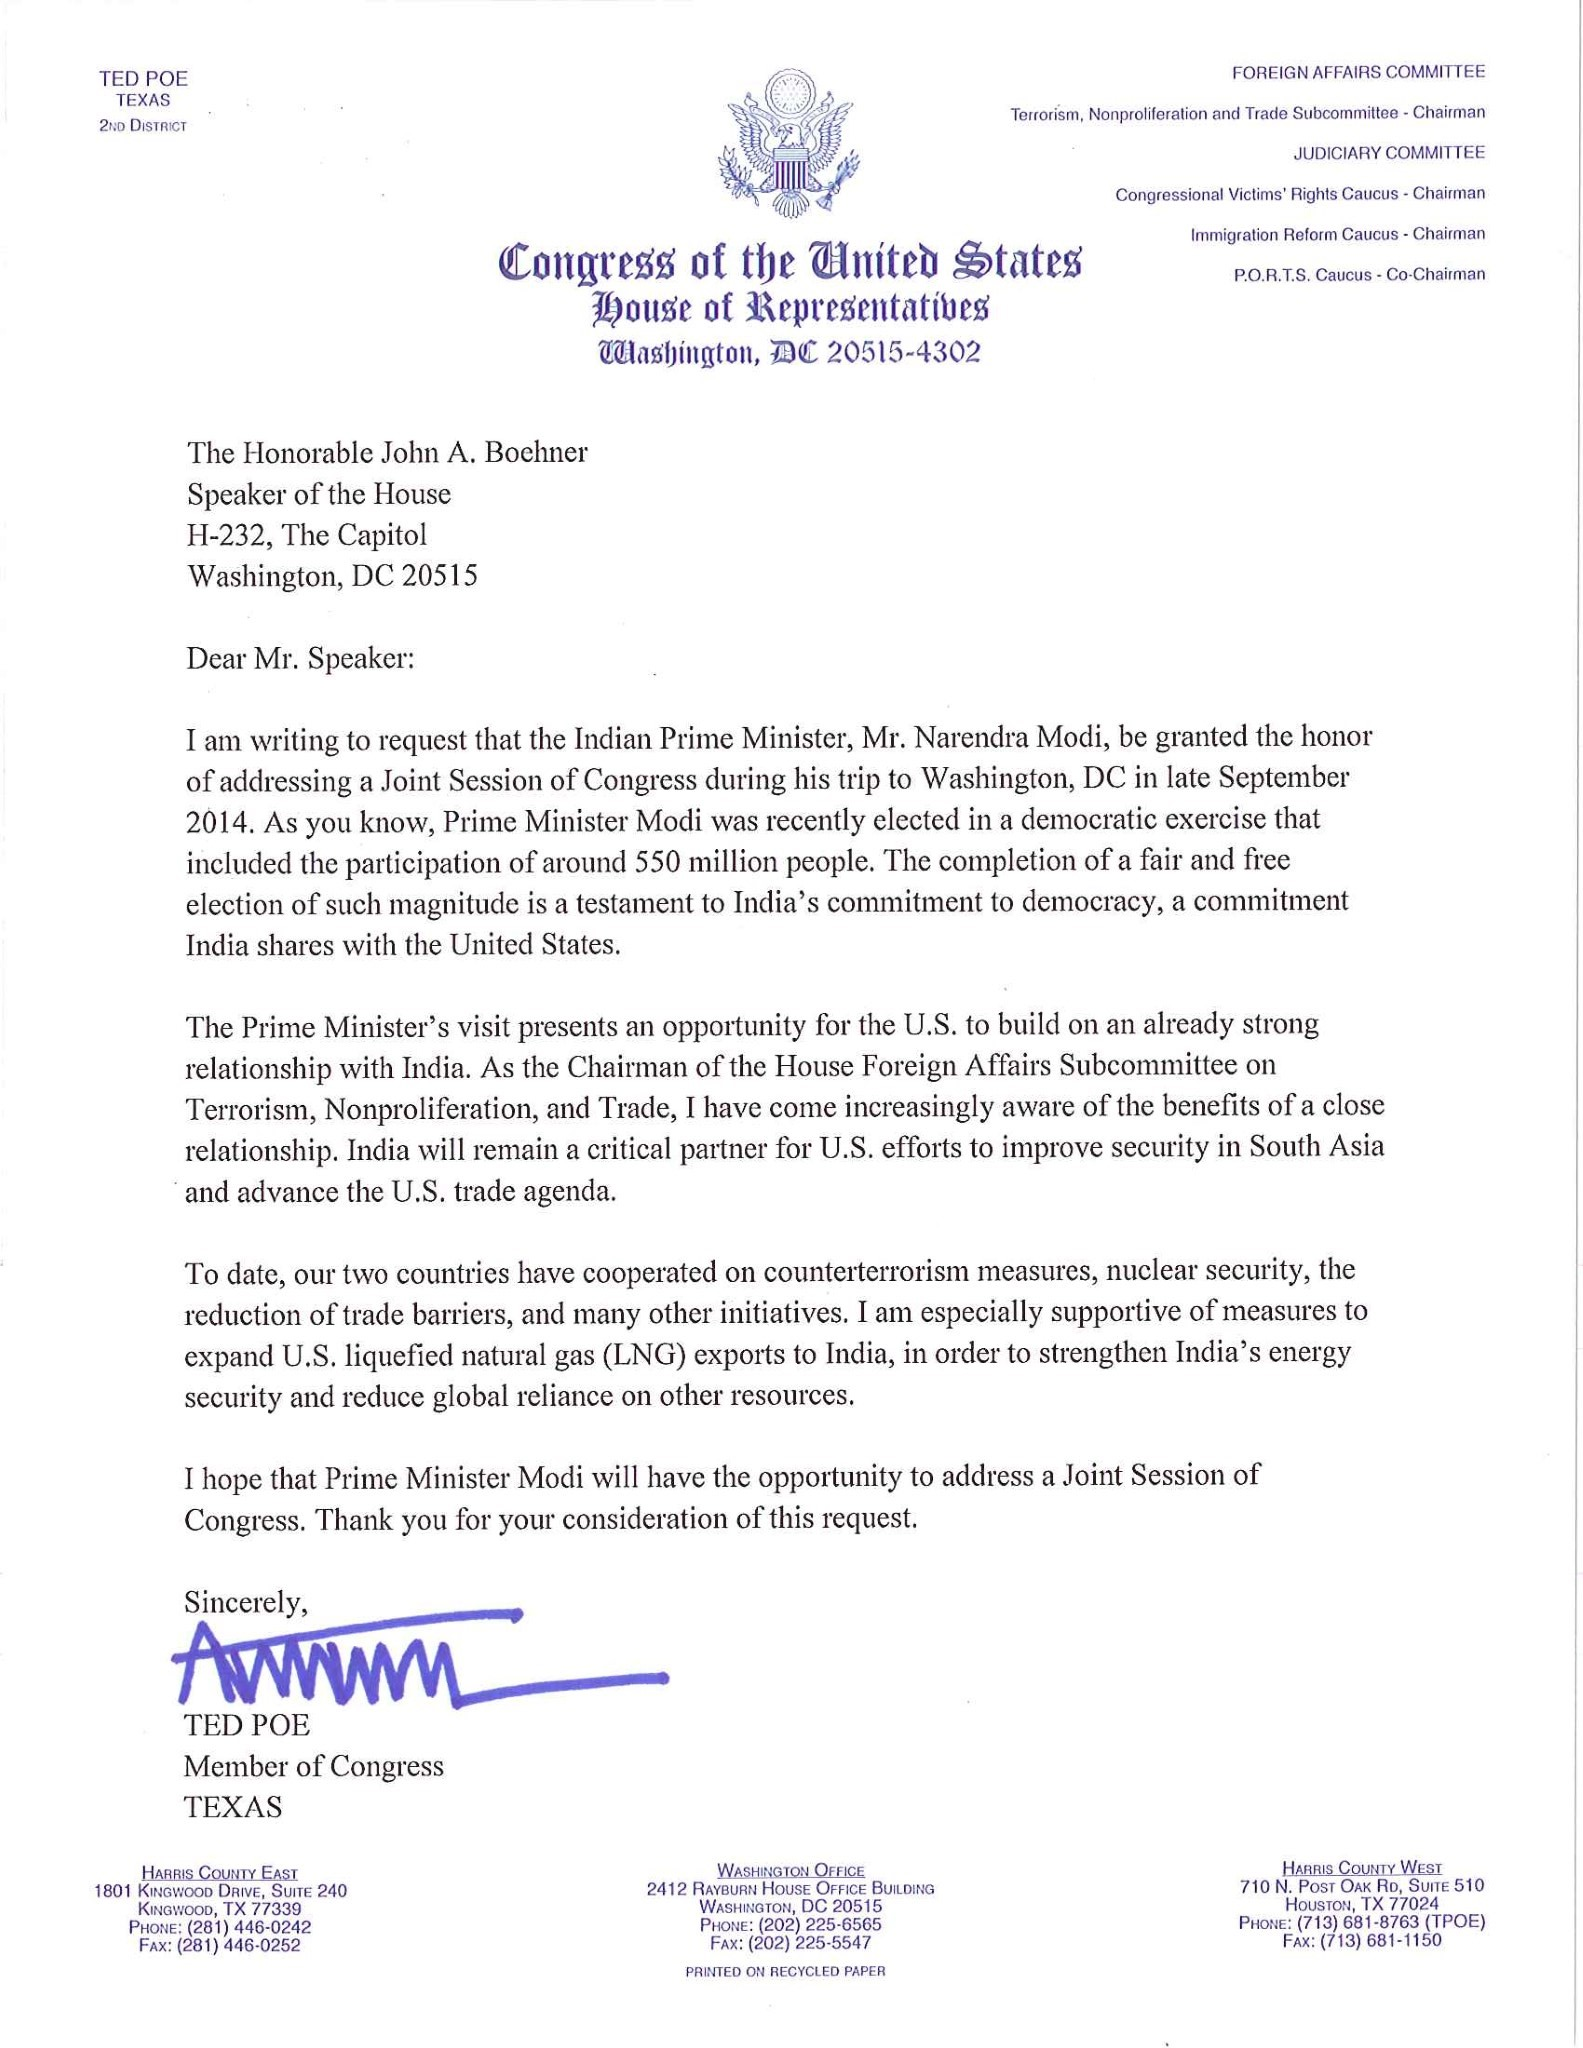 US Congressman Ted Poe letter to the House Speaker inviting Hon